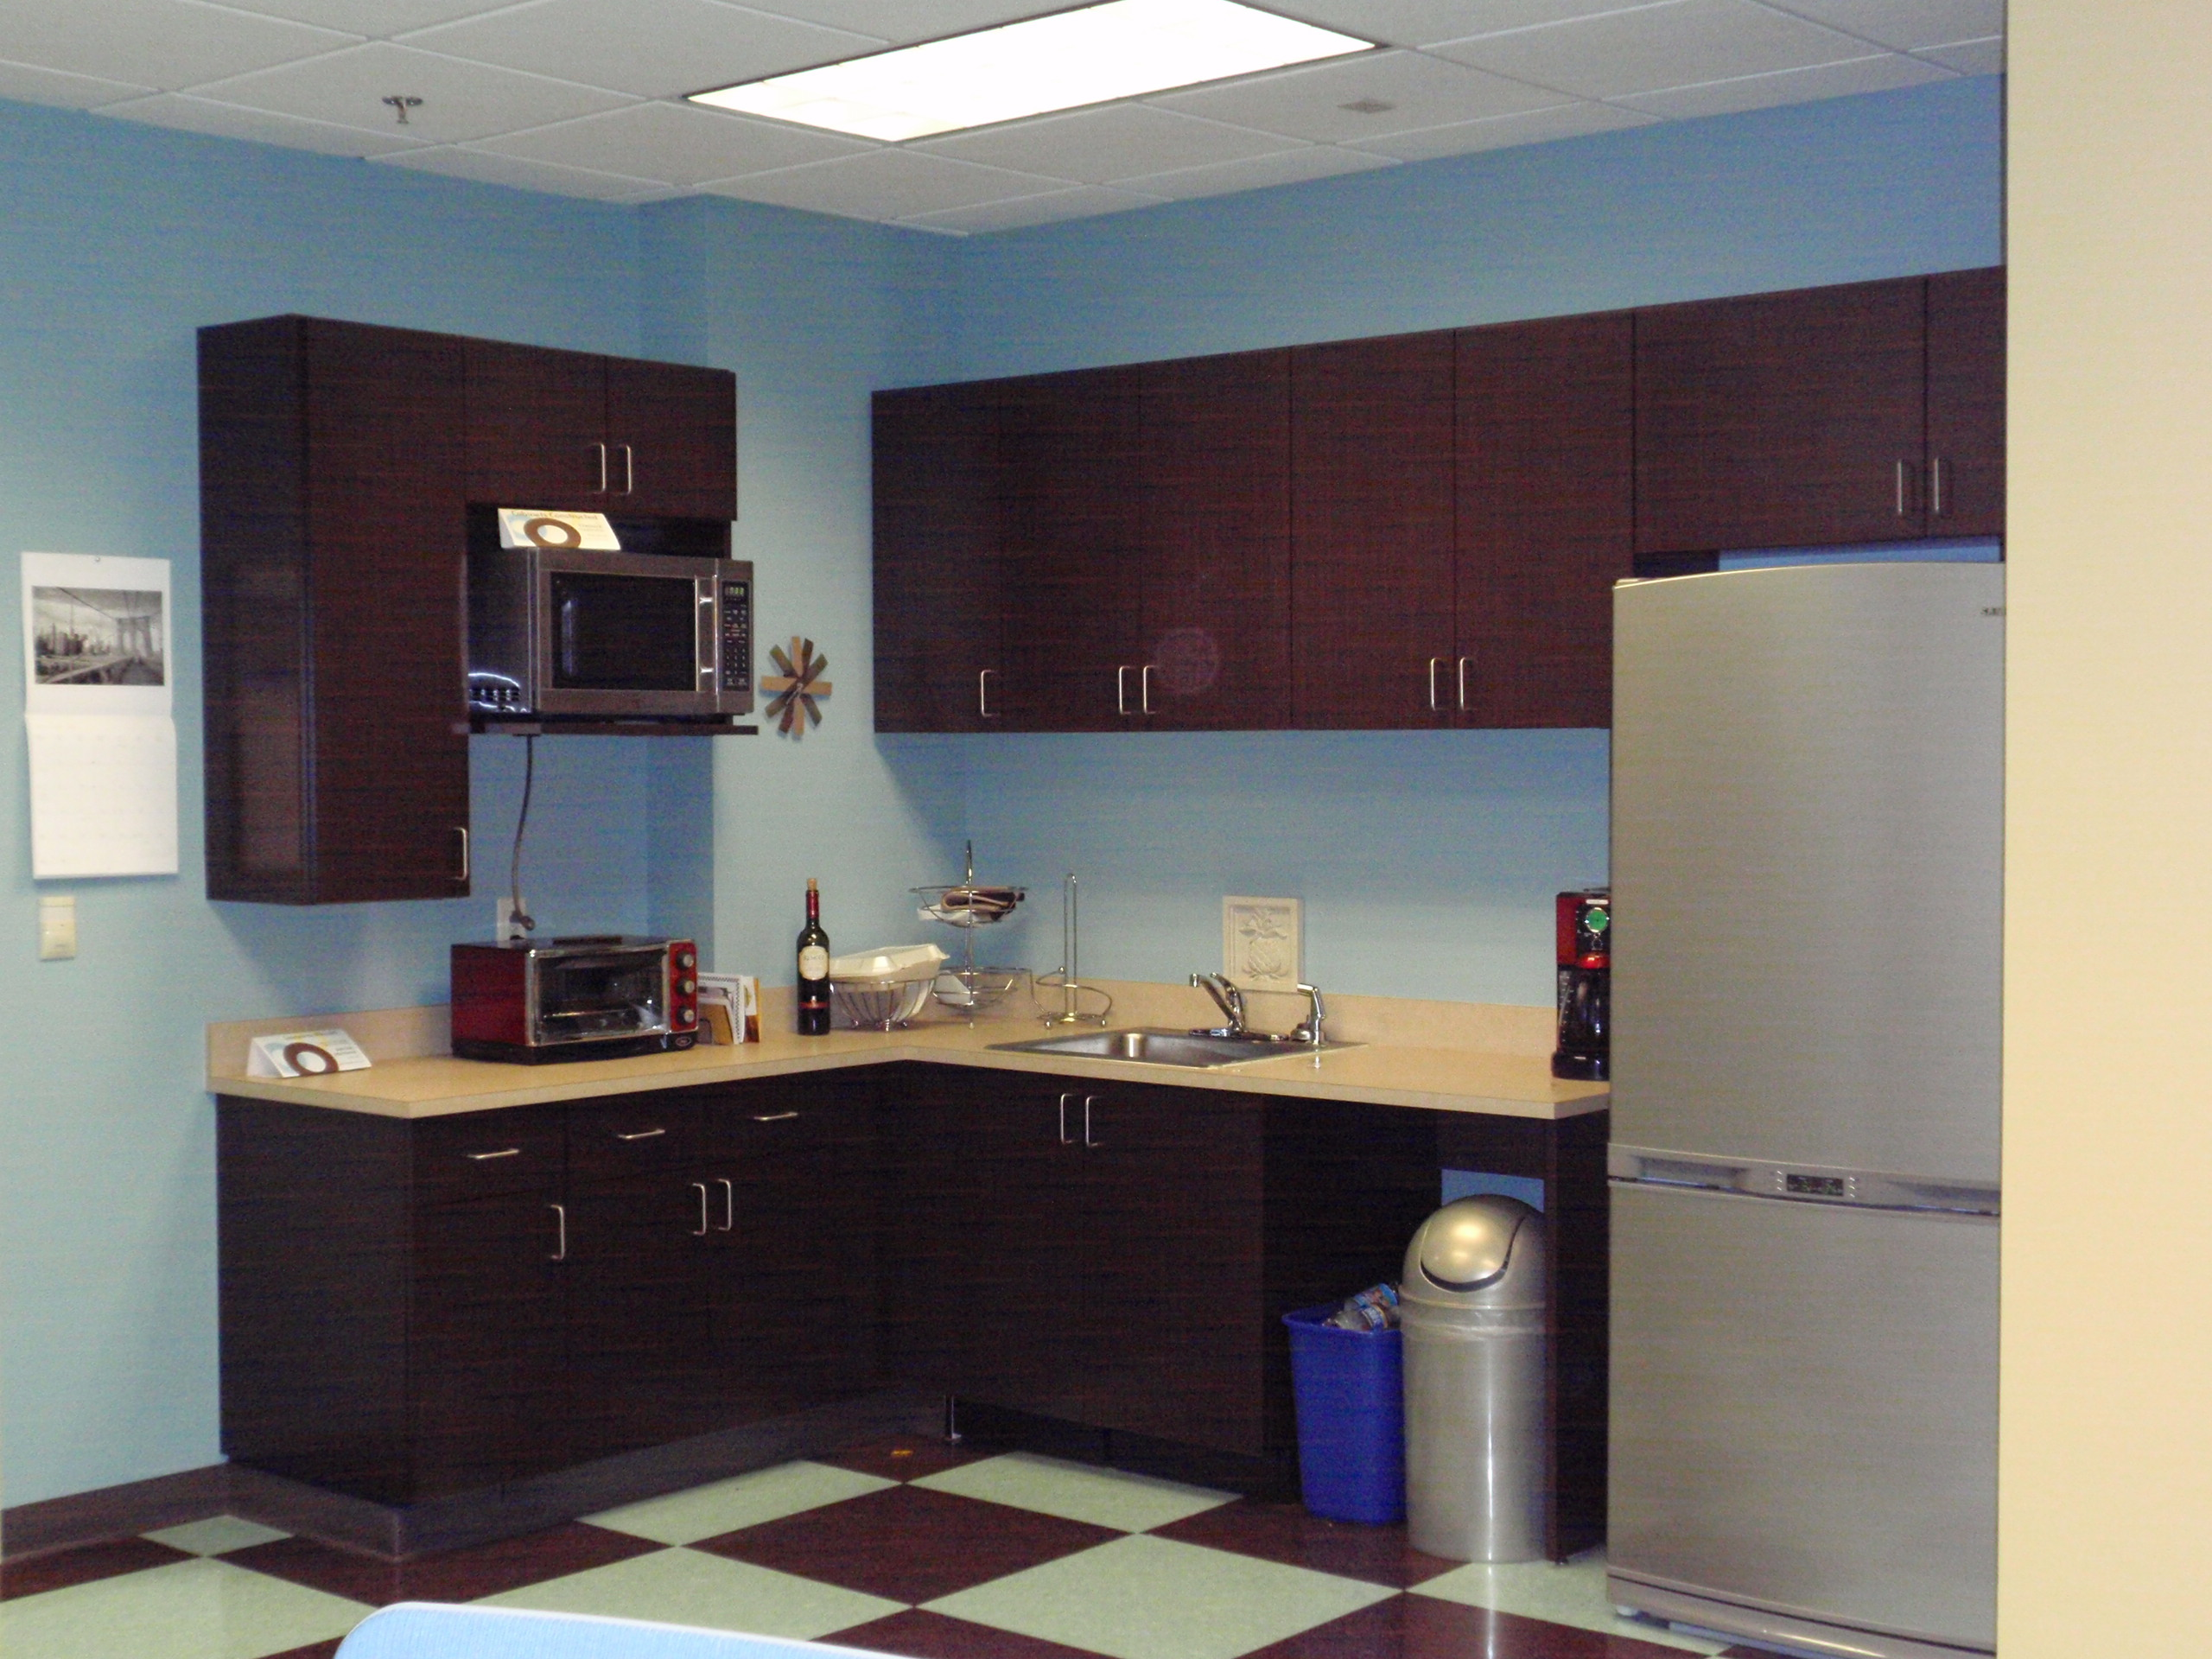 Office break room cabinets image for Home office in kitchen ideas